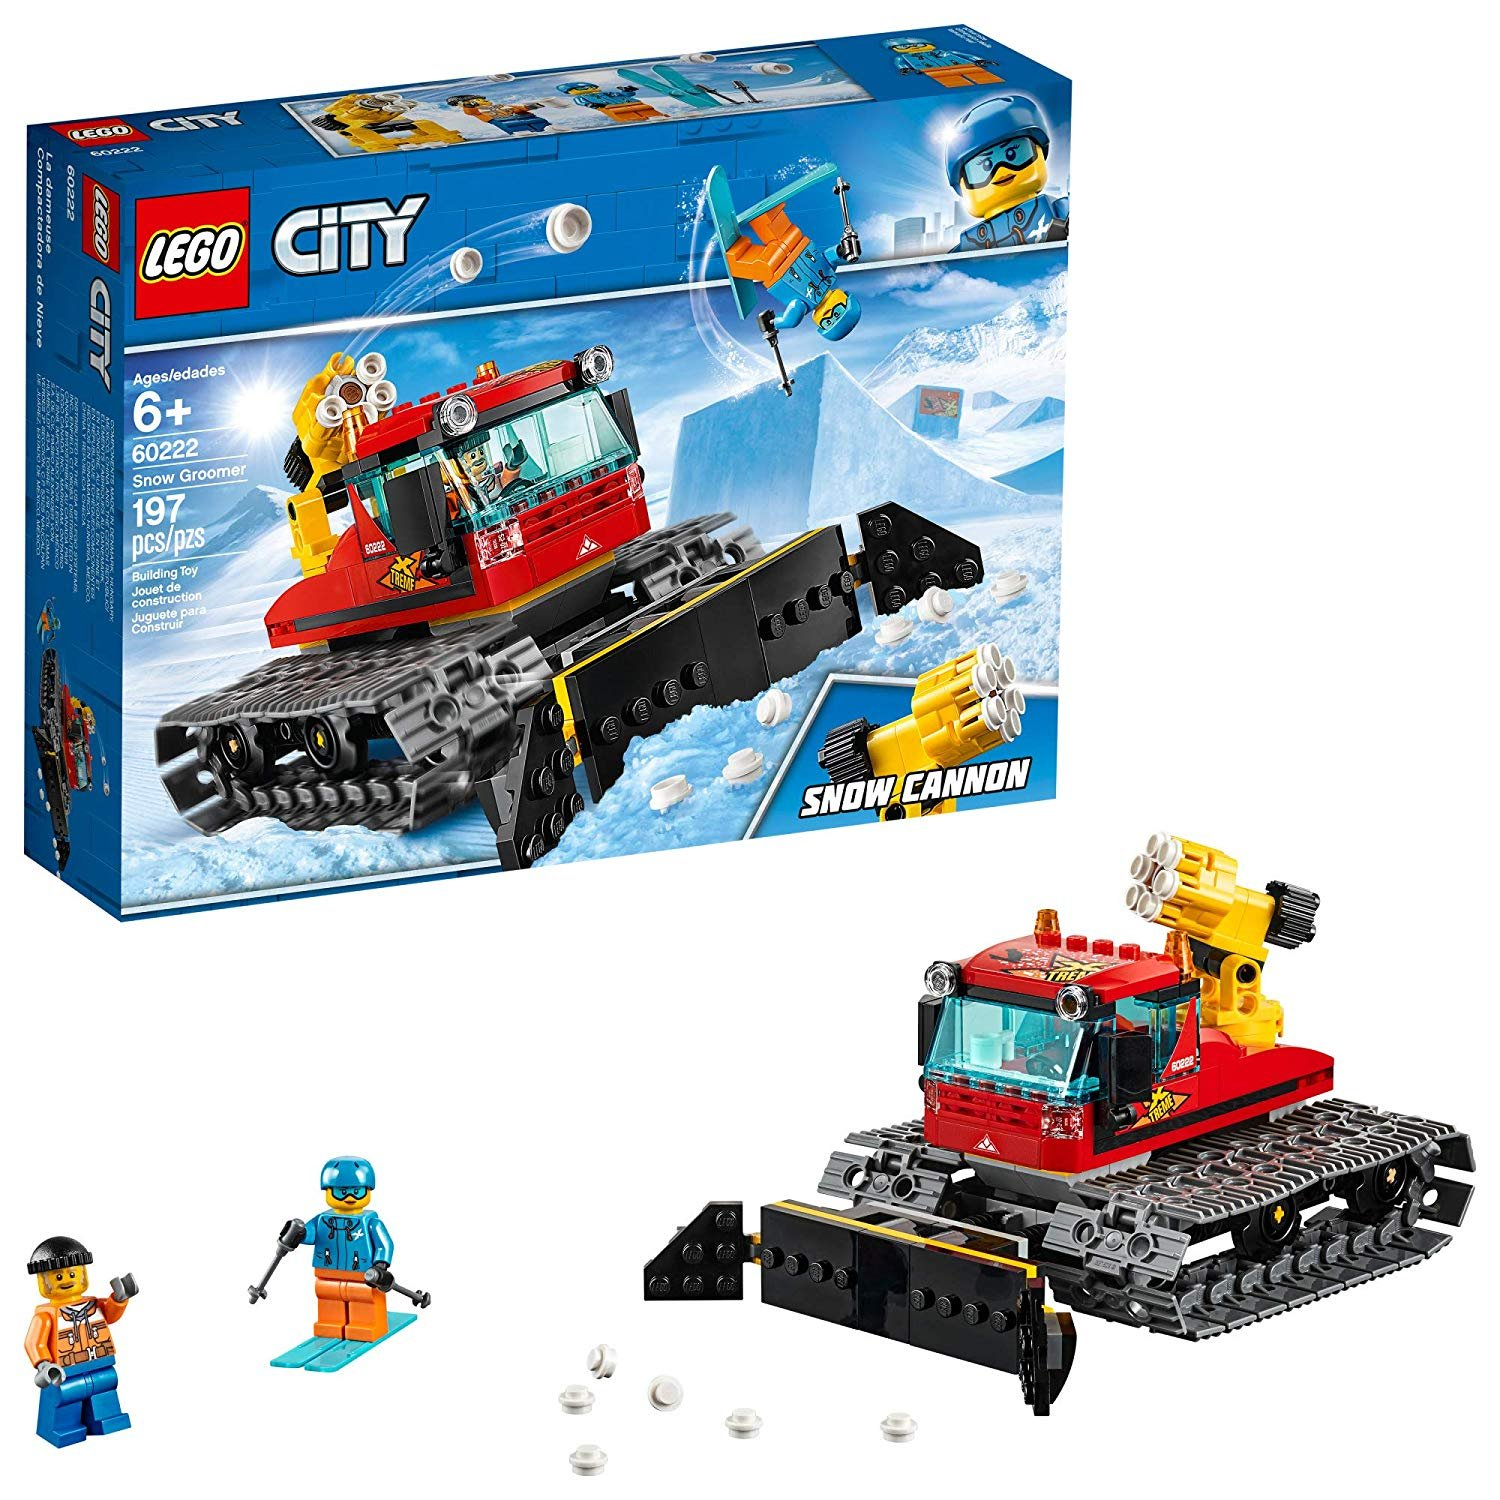 Lego City (60222) Snow Groomer 197pc Set